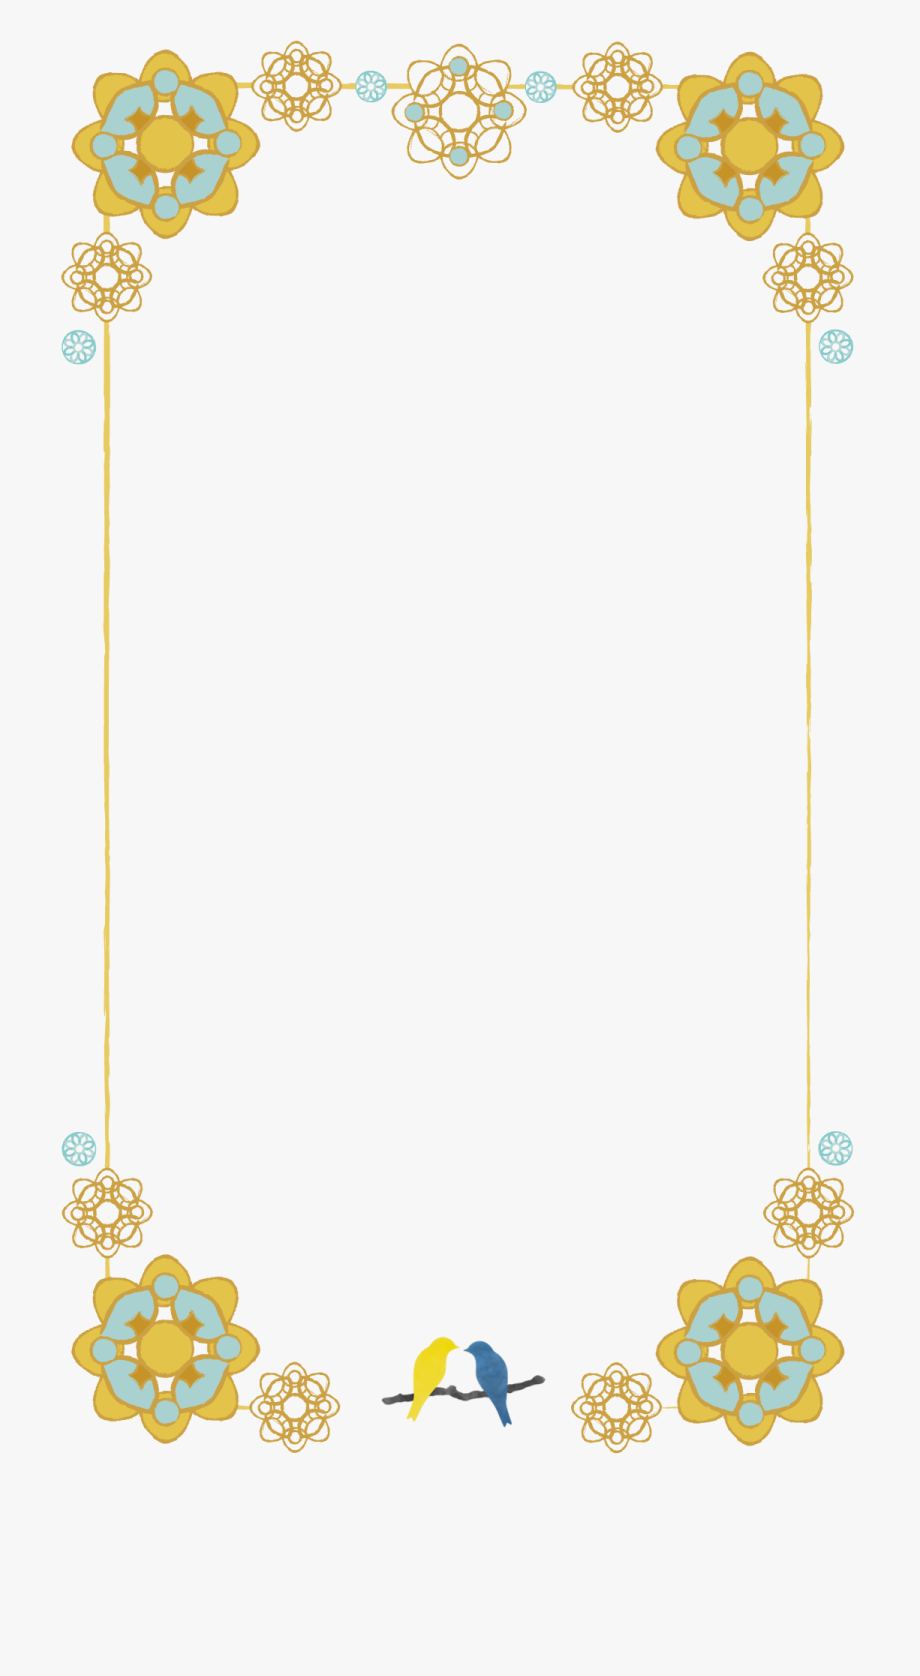 Snapchat Geofilter Upload To Snapchat For Your Summer.